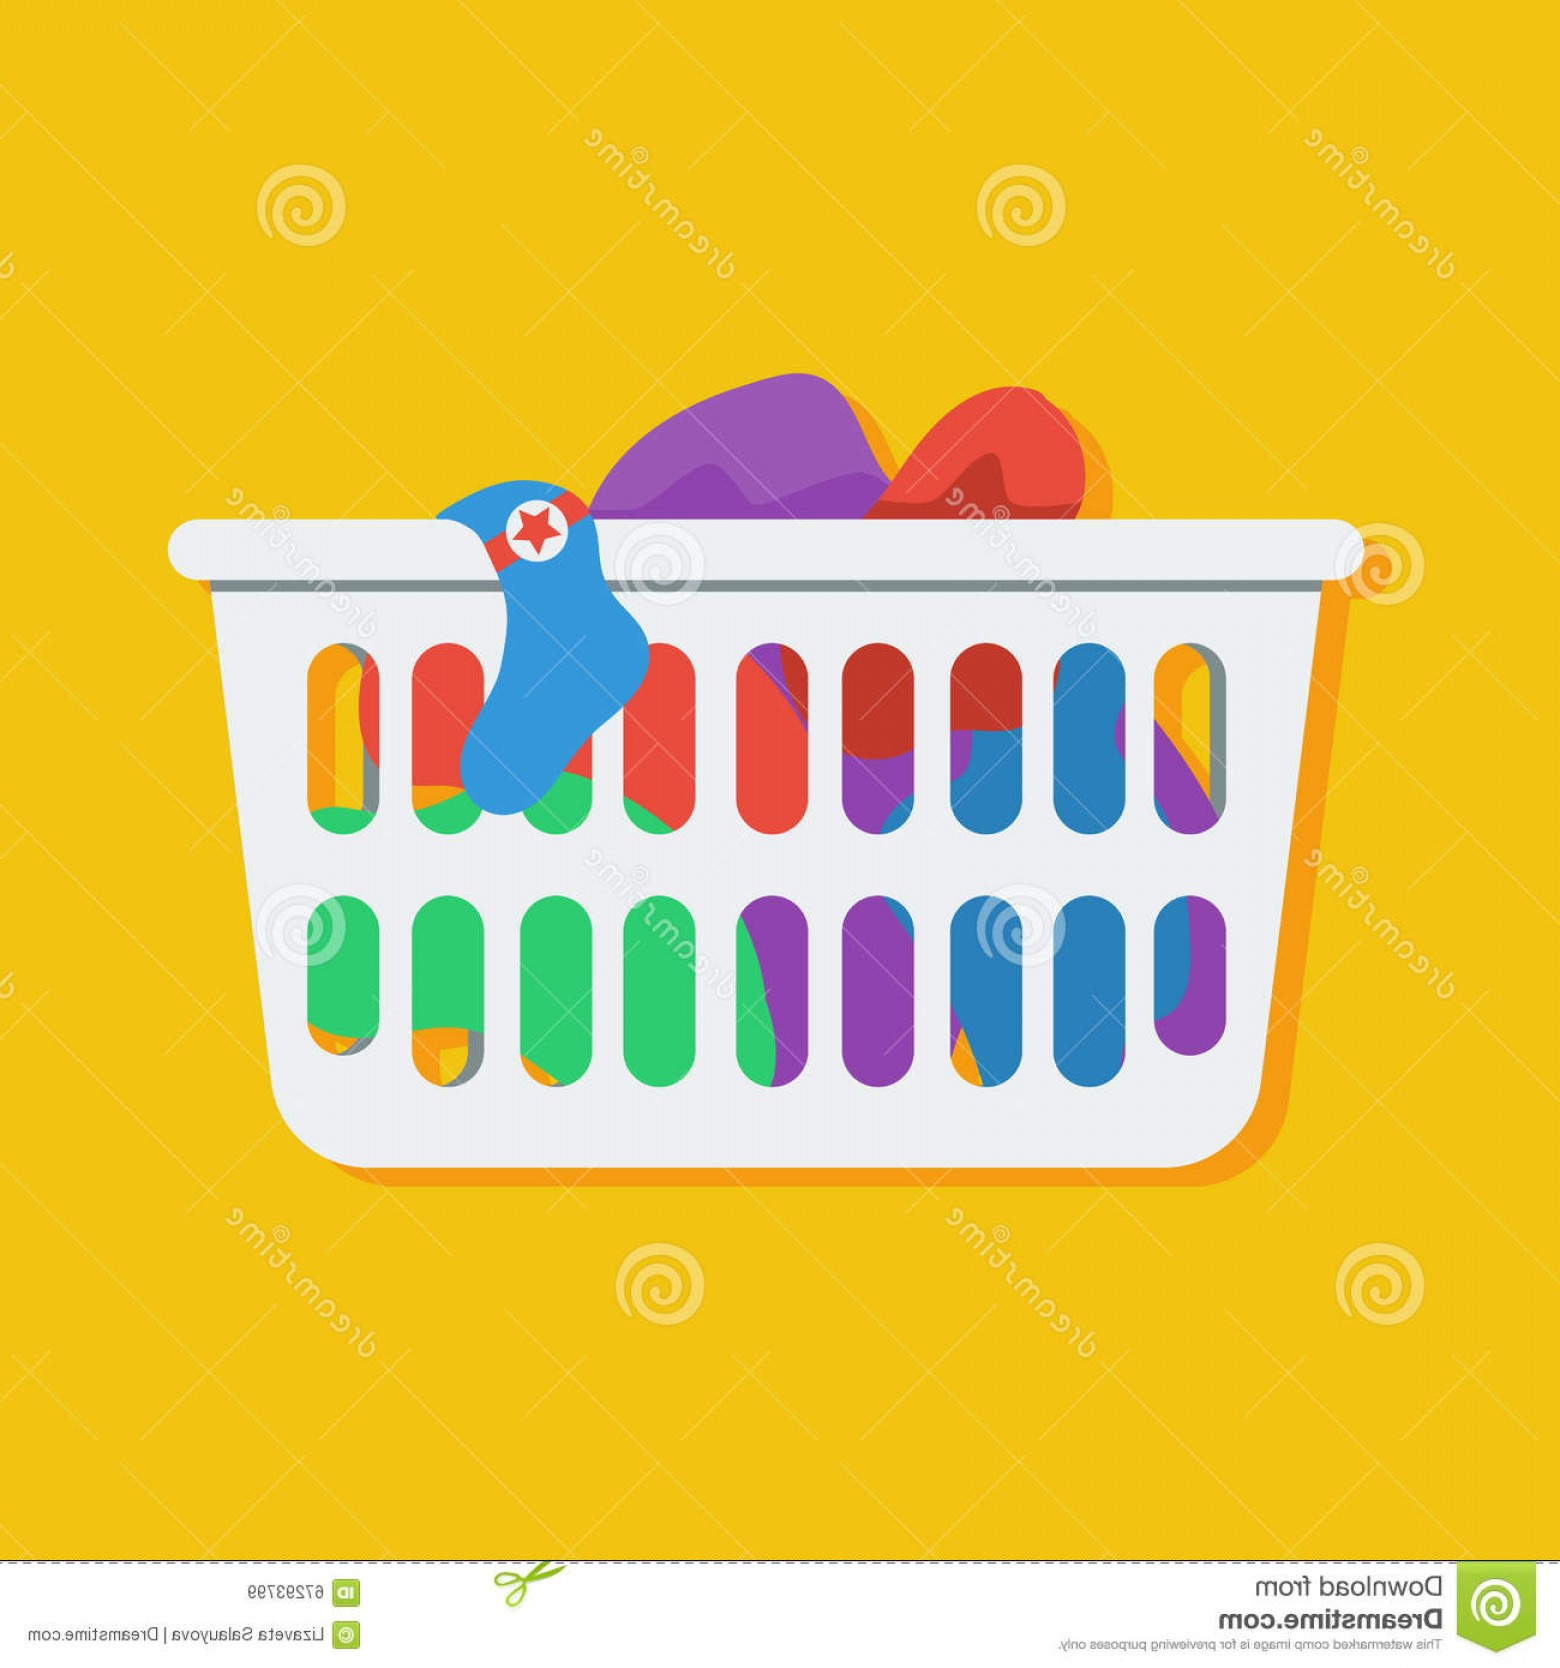 Clothes For Washing Vector: Stock Illustration Laundry Basket Vector Icon Illustration Flat Style Loundry Dirty Clothes Image